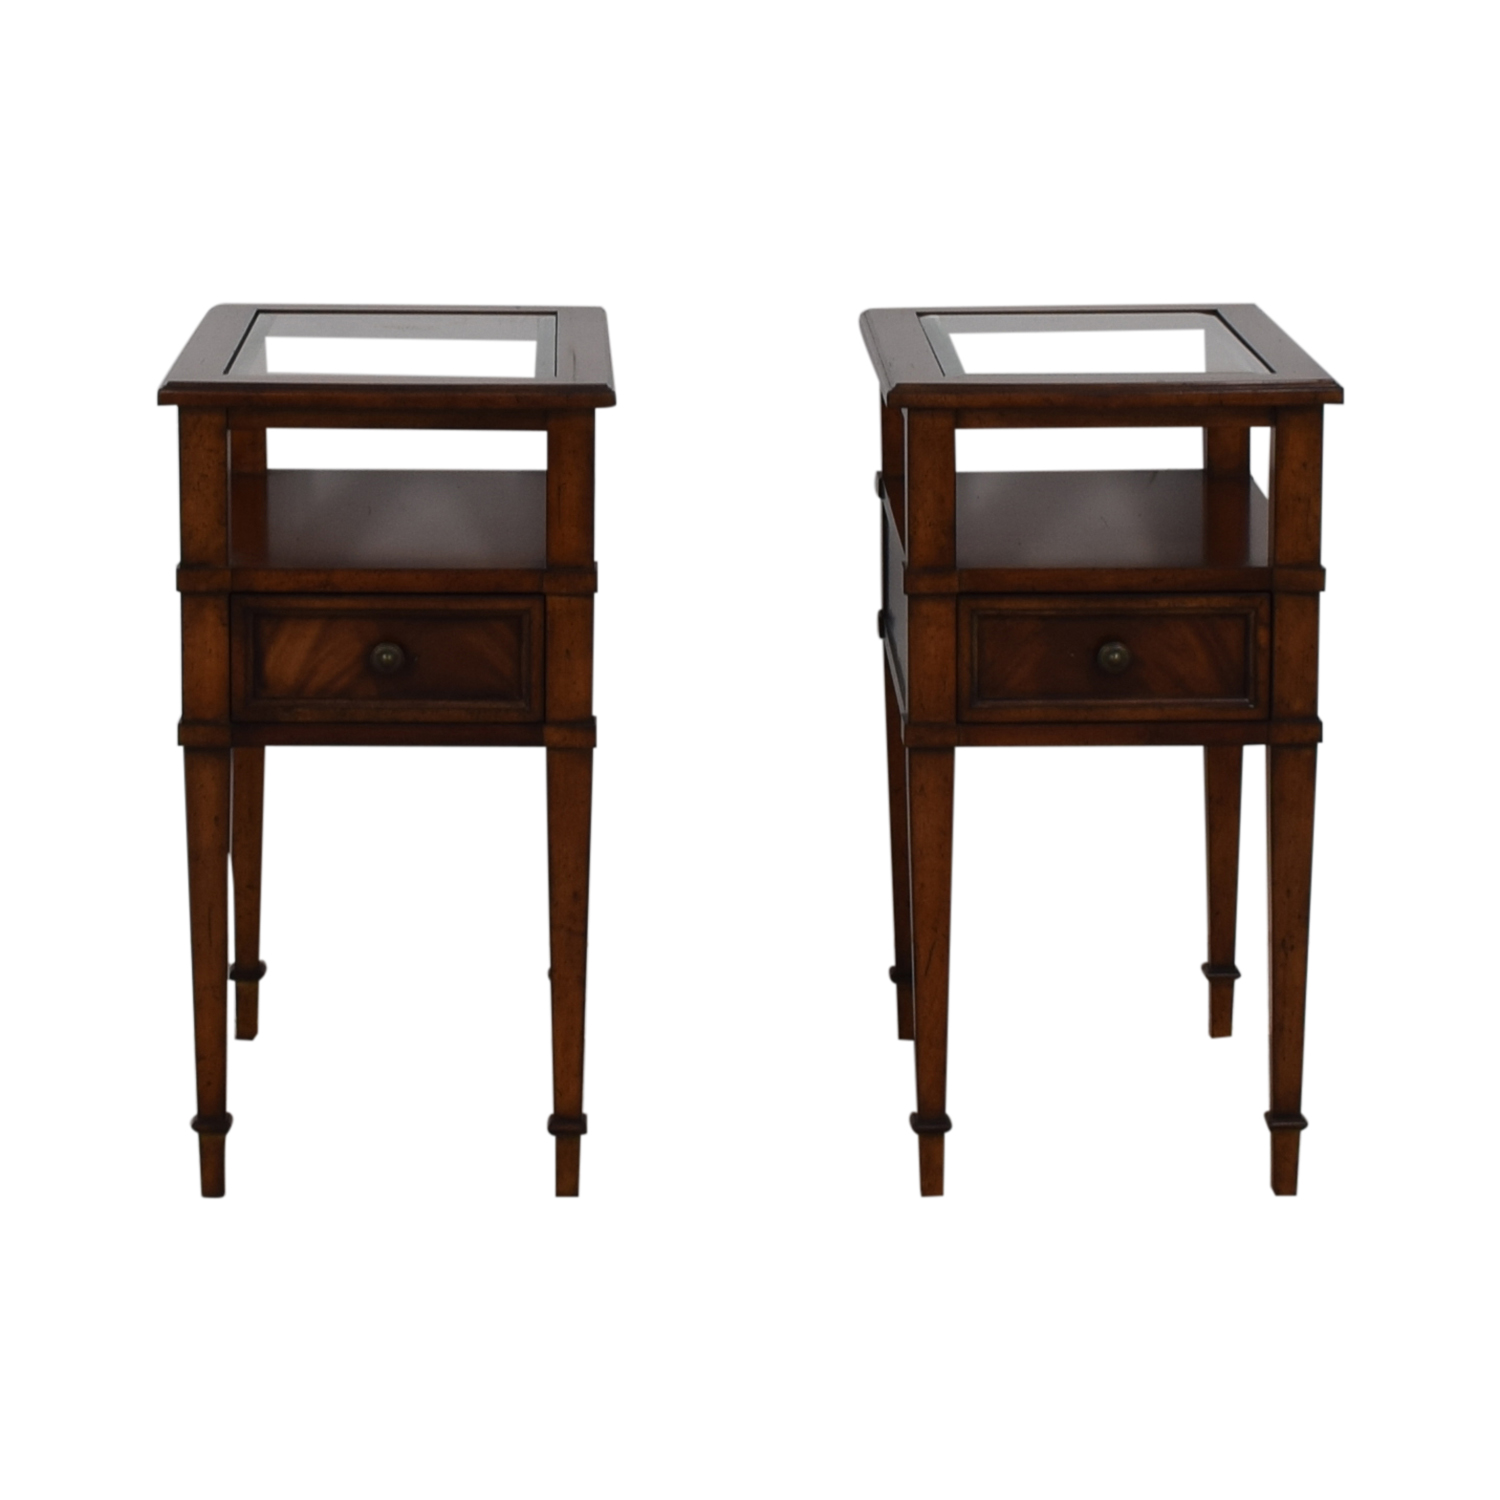 shop Drexel Heritage Single Drawer Glass and Wood Side Tables Drexel Heritage